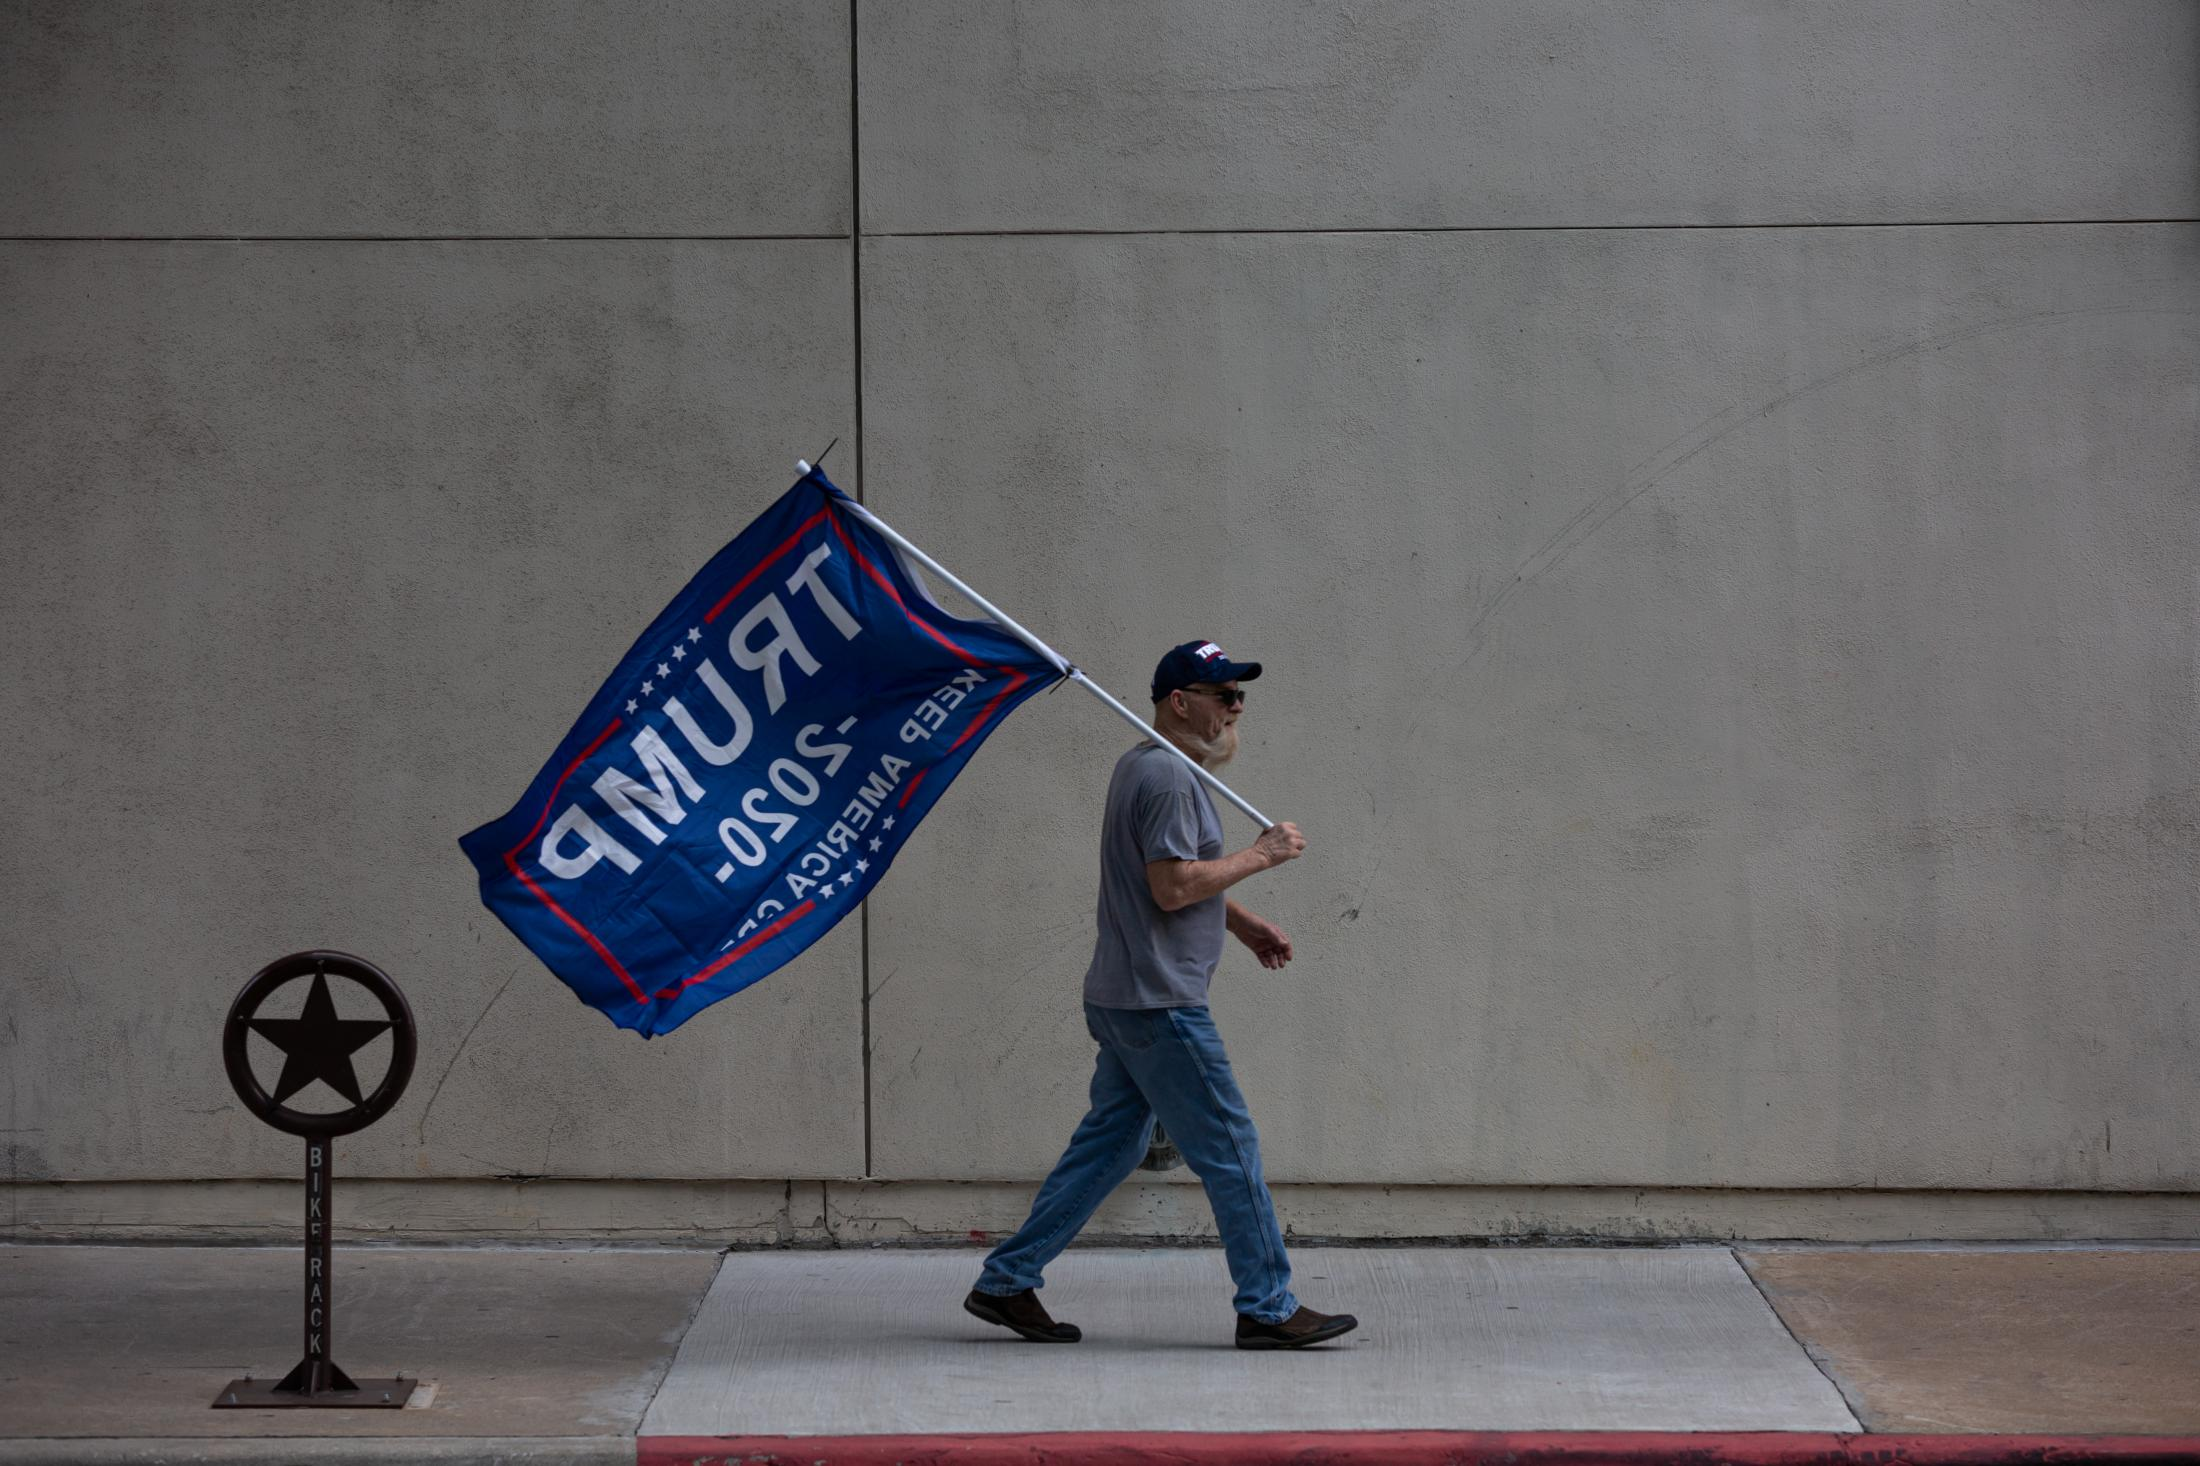 11/14/20 Fort Worth, Texas - A Trump Supporter holds his flags as he walks back to his vehicle after a massive Trump rally against the 2020 Presidential Election.